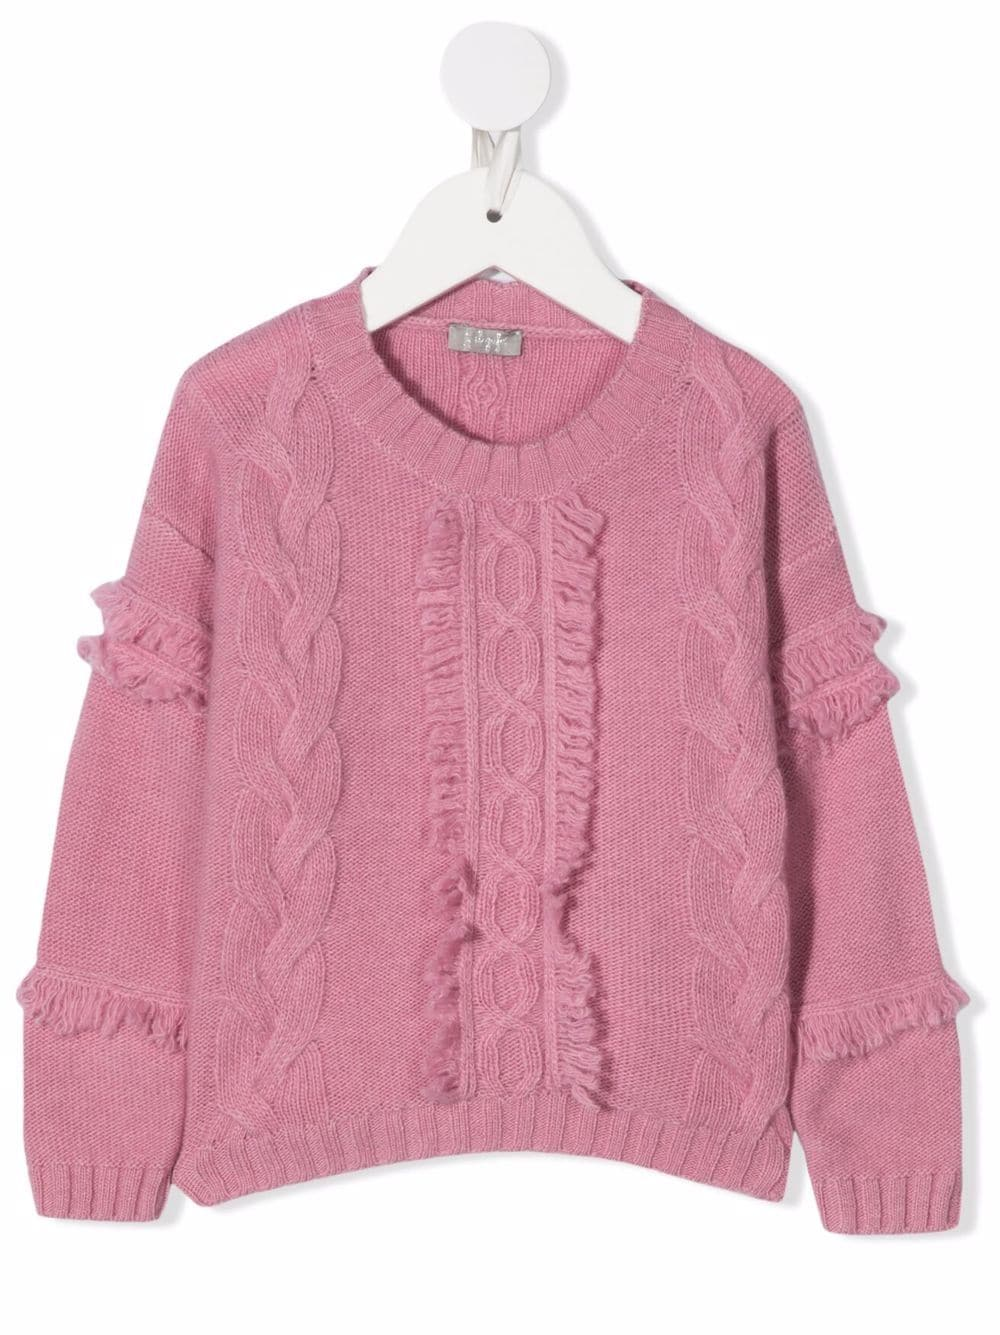 Kids Pink Sweater With Braids And Fringes